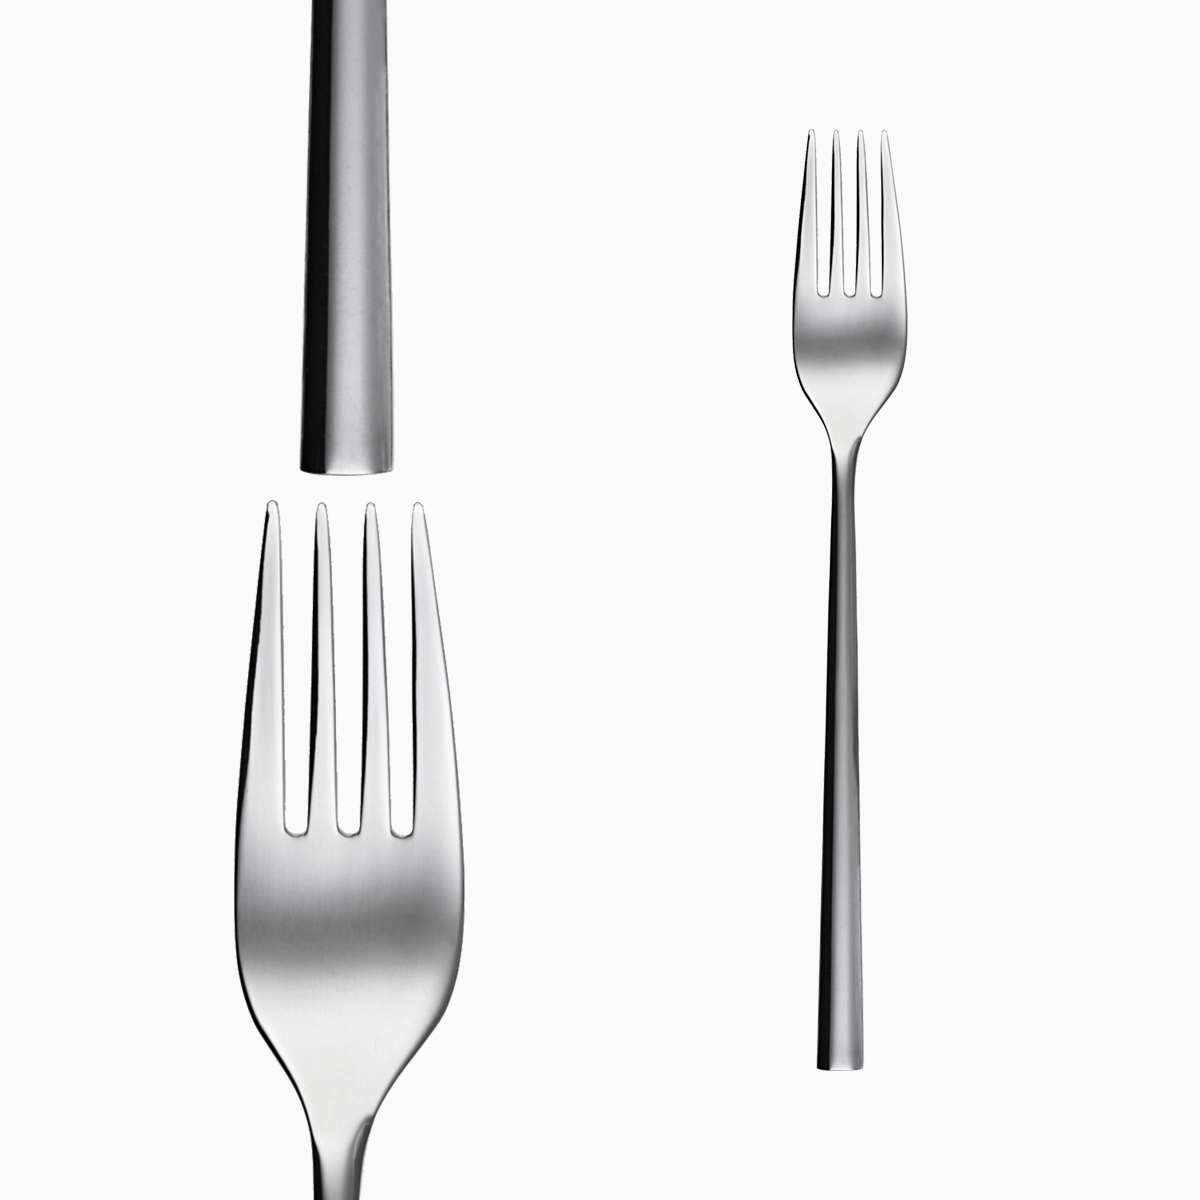 Bộ 6c Nĩa ăn Inox 304 (Set of 6pcs Table fork SS18/10) 107001